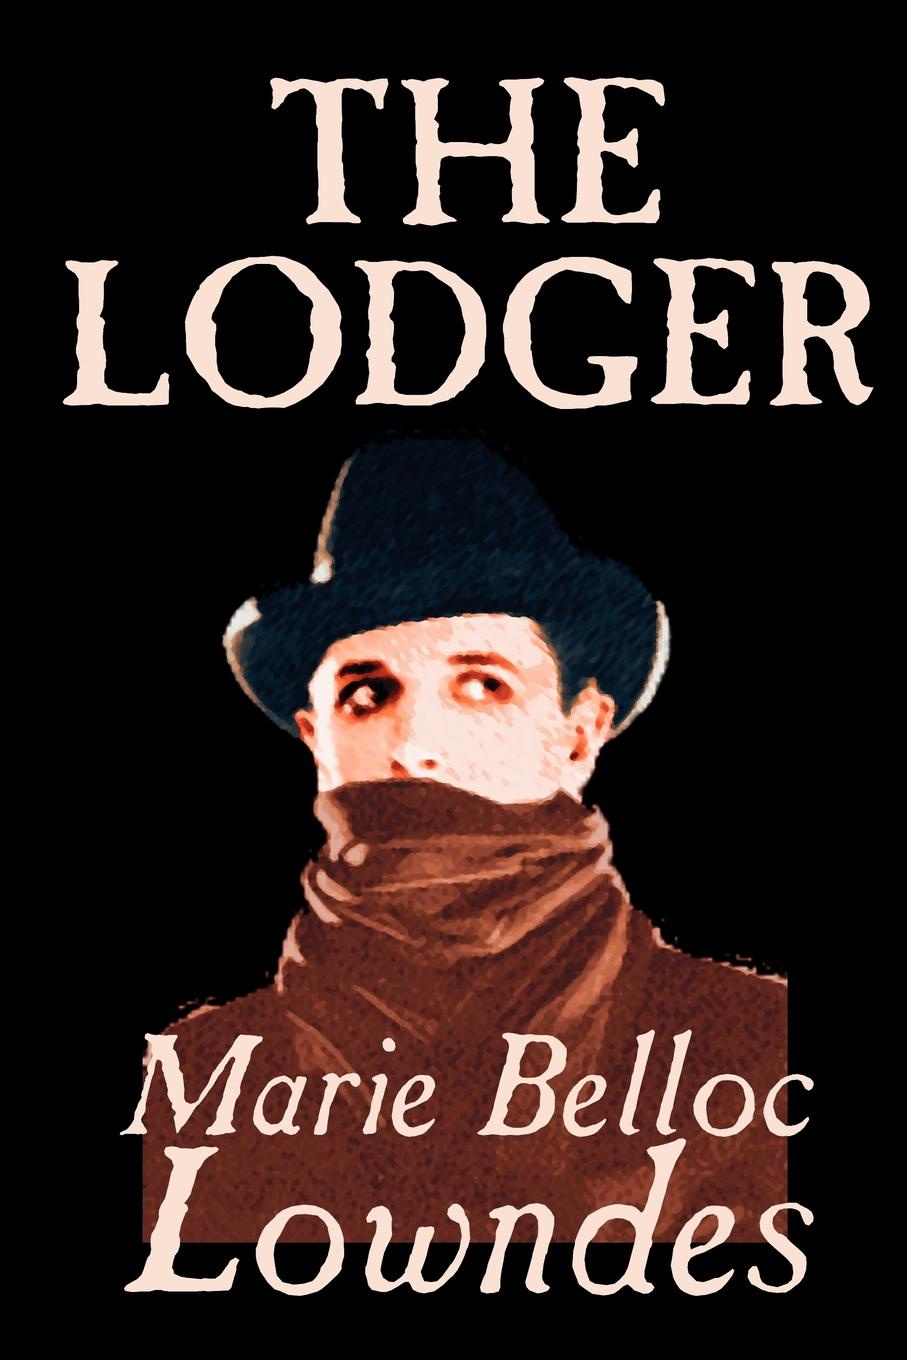 Marie Belloc Lowndes The Lodger by Marie Belloc Lowndes, Fiction, Mystery & Detective одеяла lodger baby dreamer флис